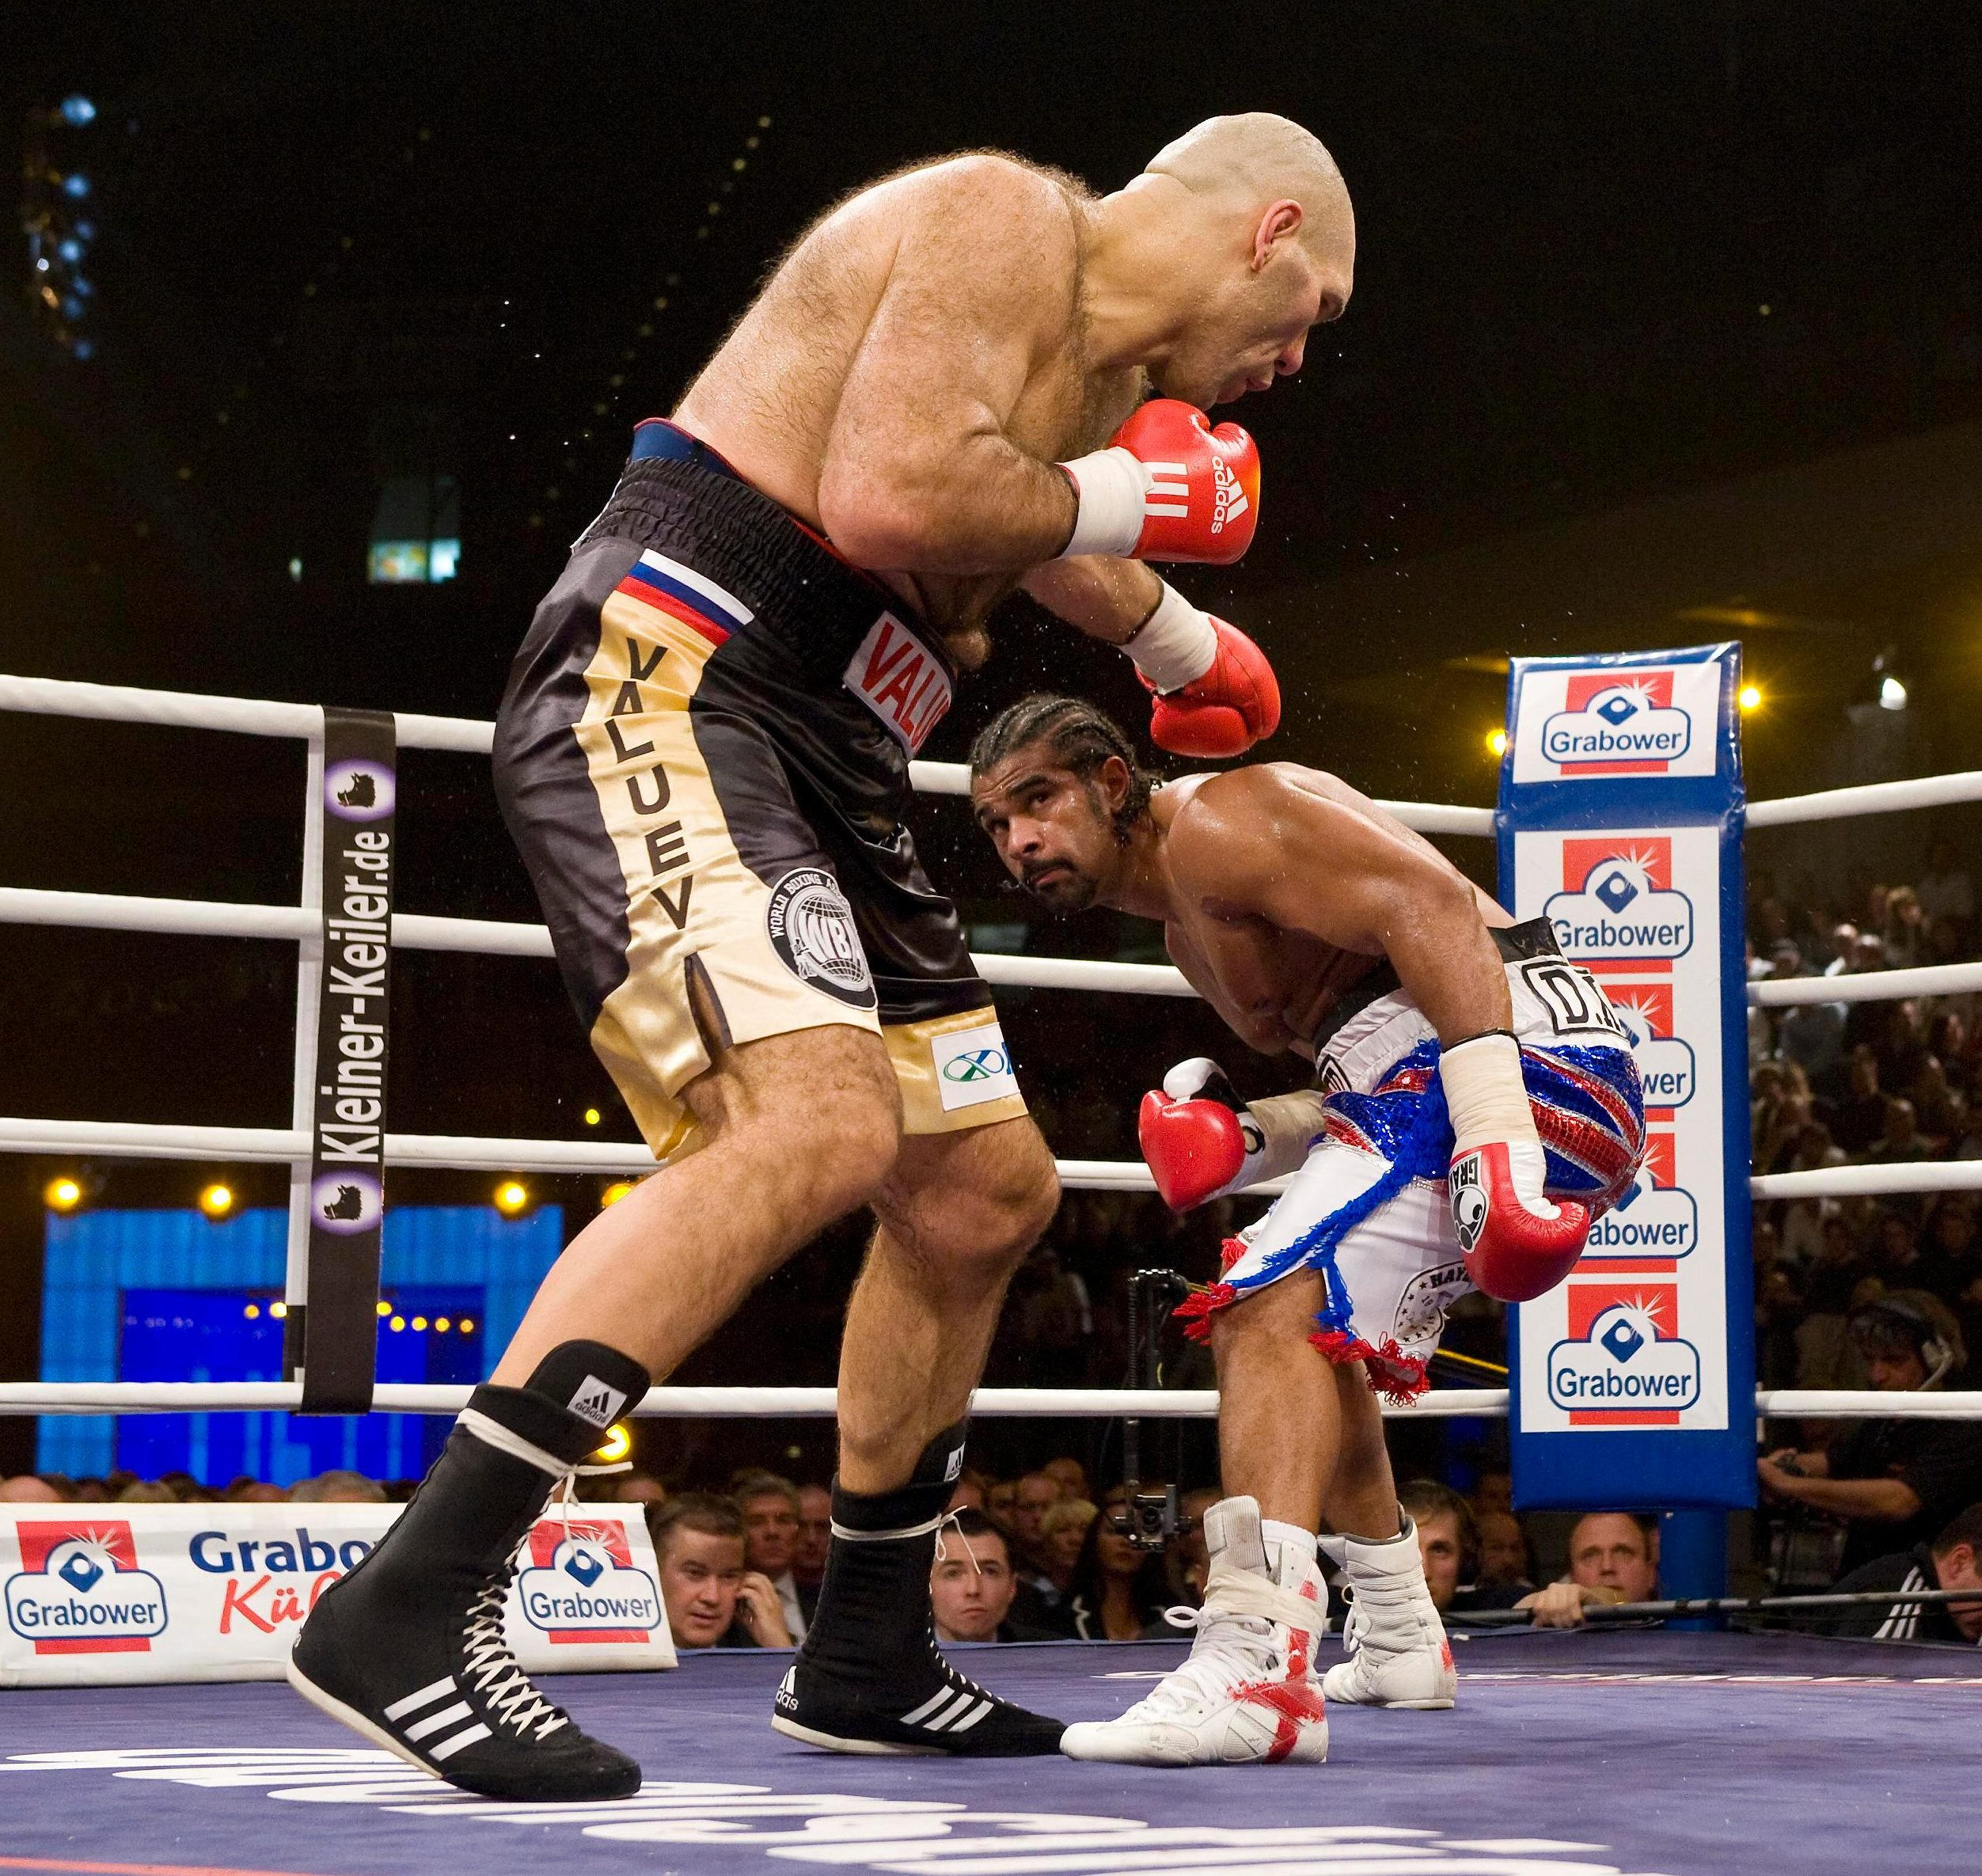 Valuev weighed in more than 100 pounds heavier than Haye for the 2009 world title fight, but the Brit came out on top